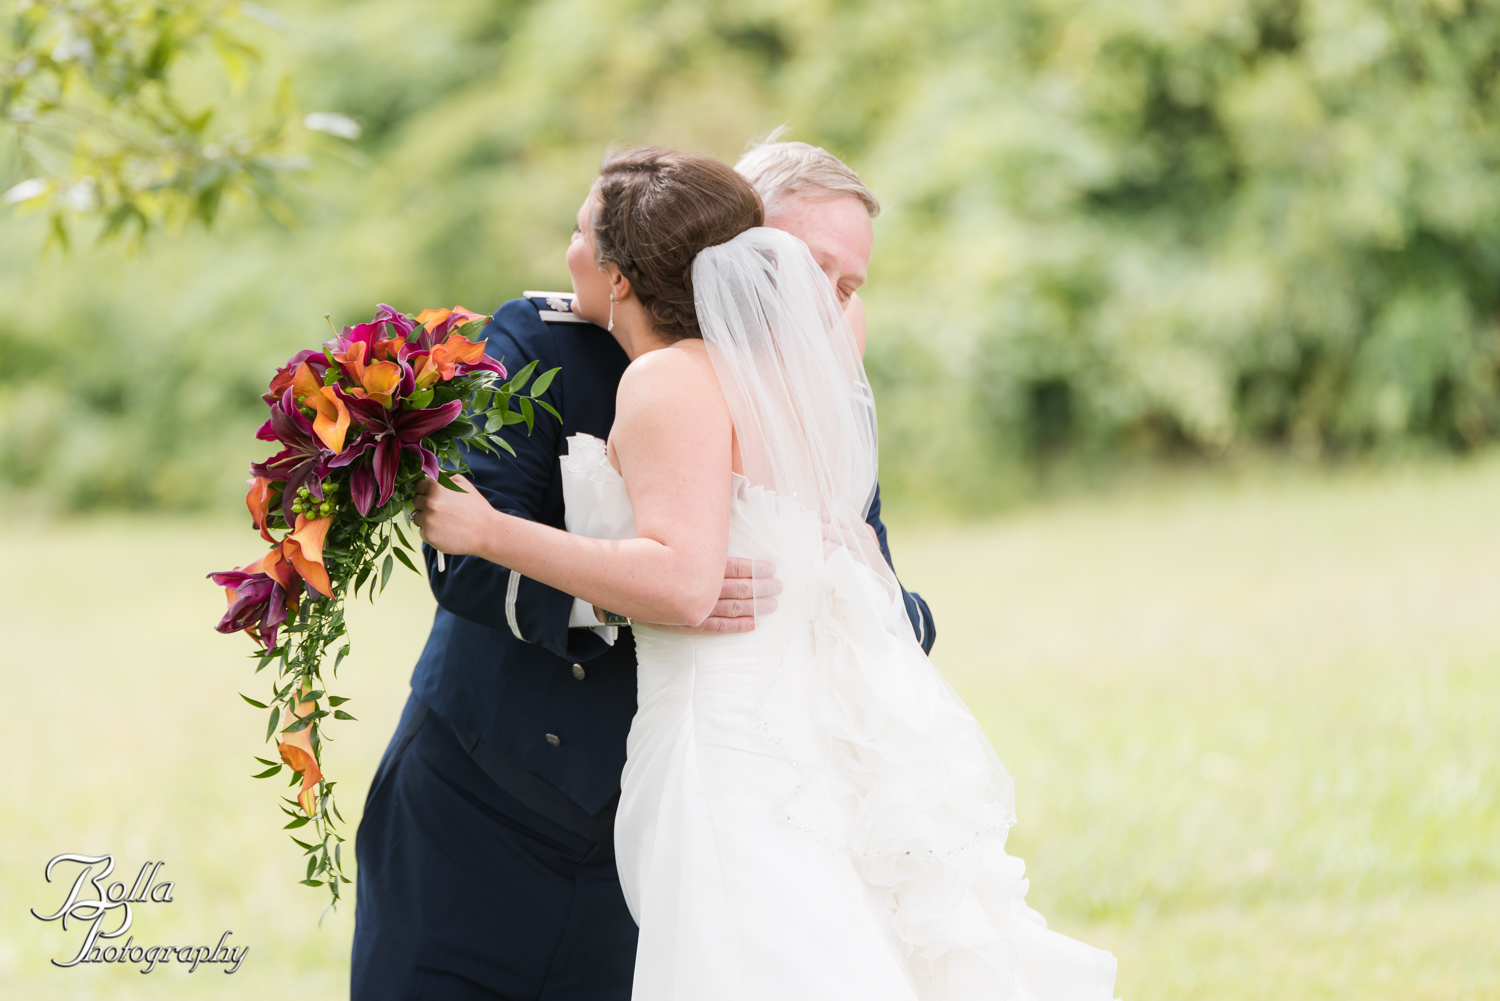 Bolla_Photography_St_Louis_wedding_photographer-0068.jpg